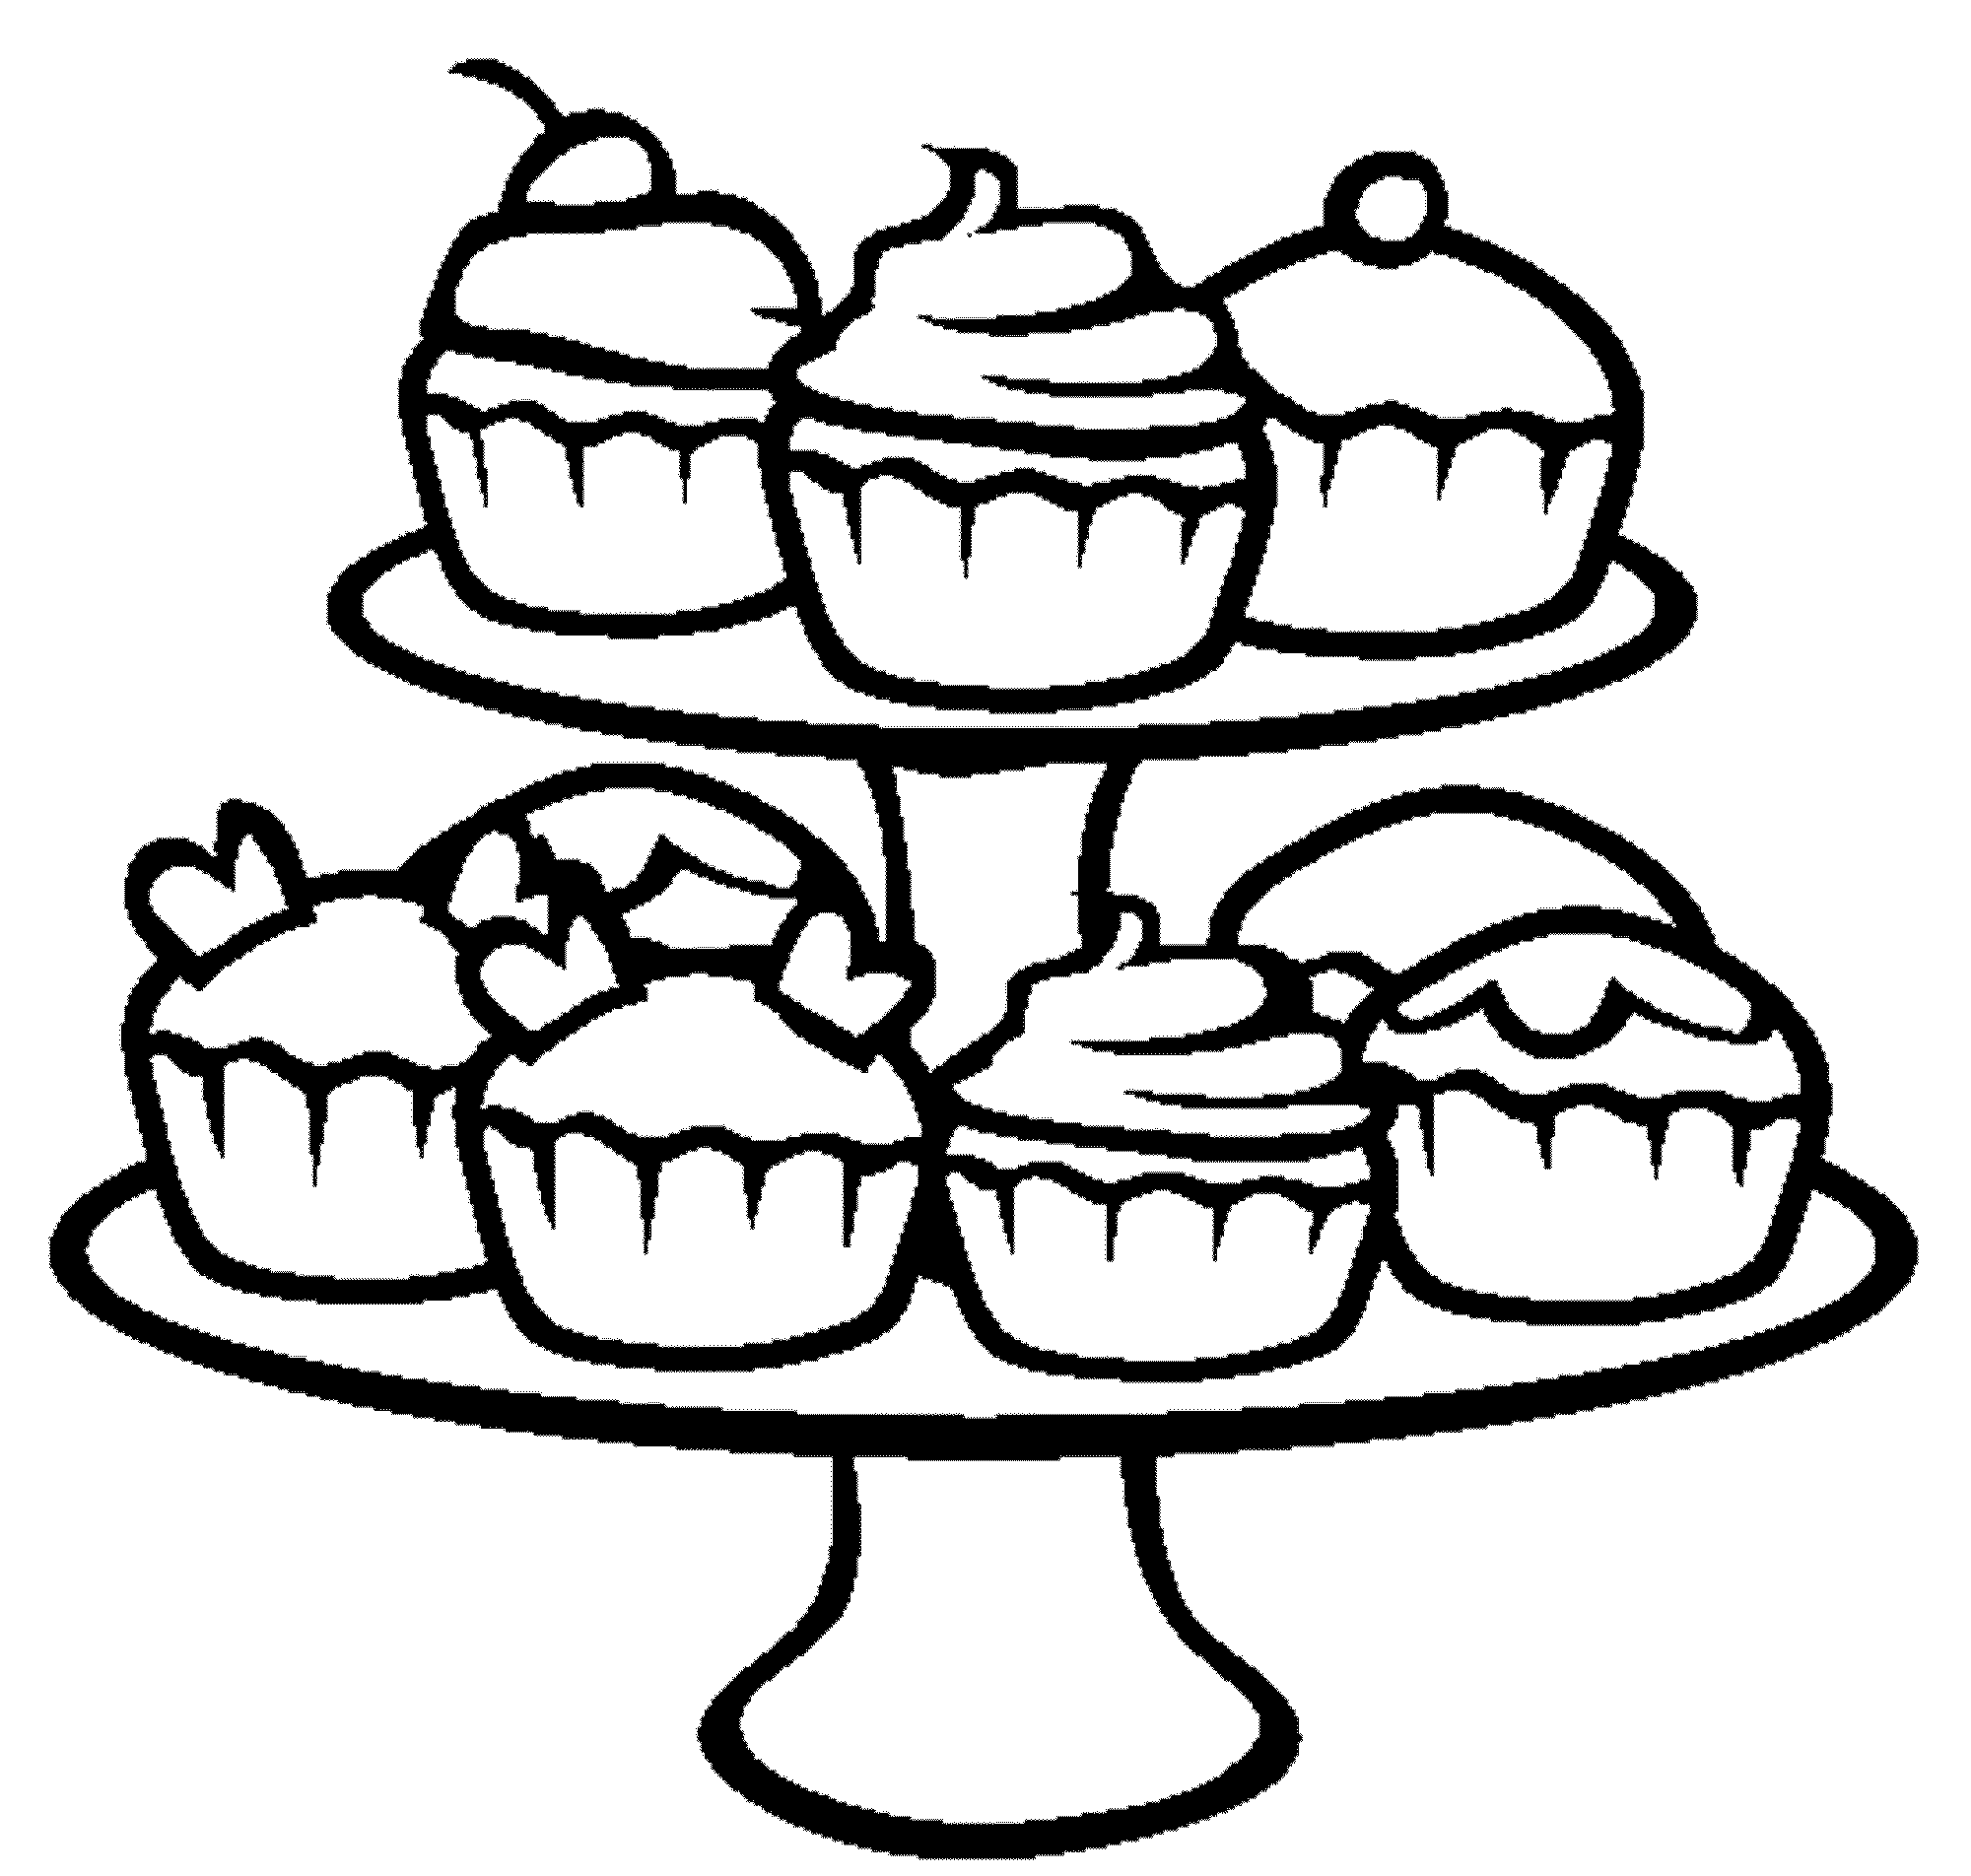 cupcakes coloring page - cute cupcakes coloring pages coloring home